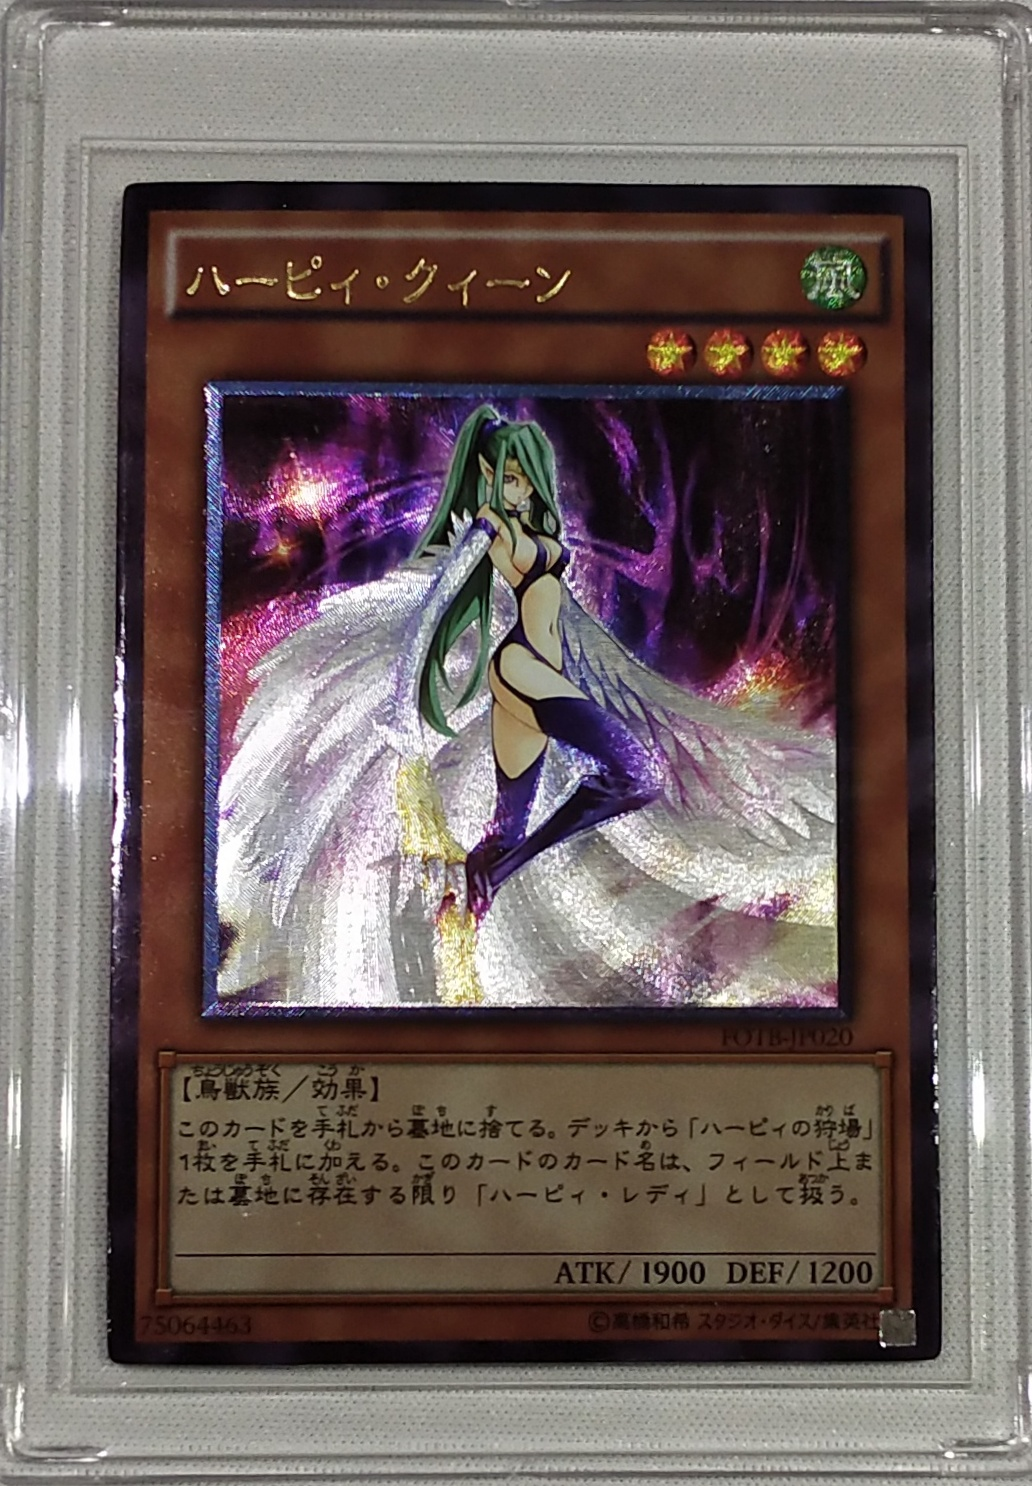 Yu Gi Oh Harpie Girl DIY Toys Hobbies Hobby Collectibles Game Collection Anime Cards